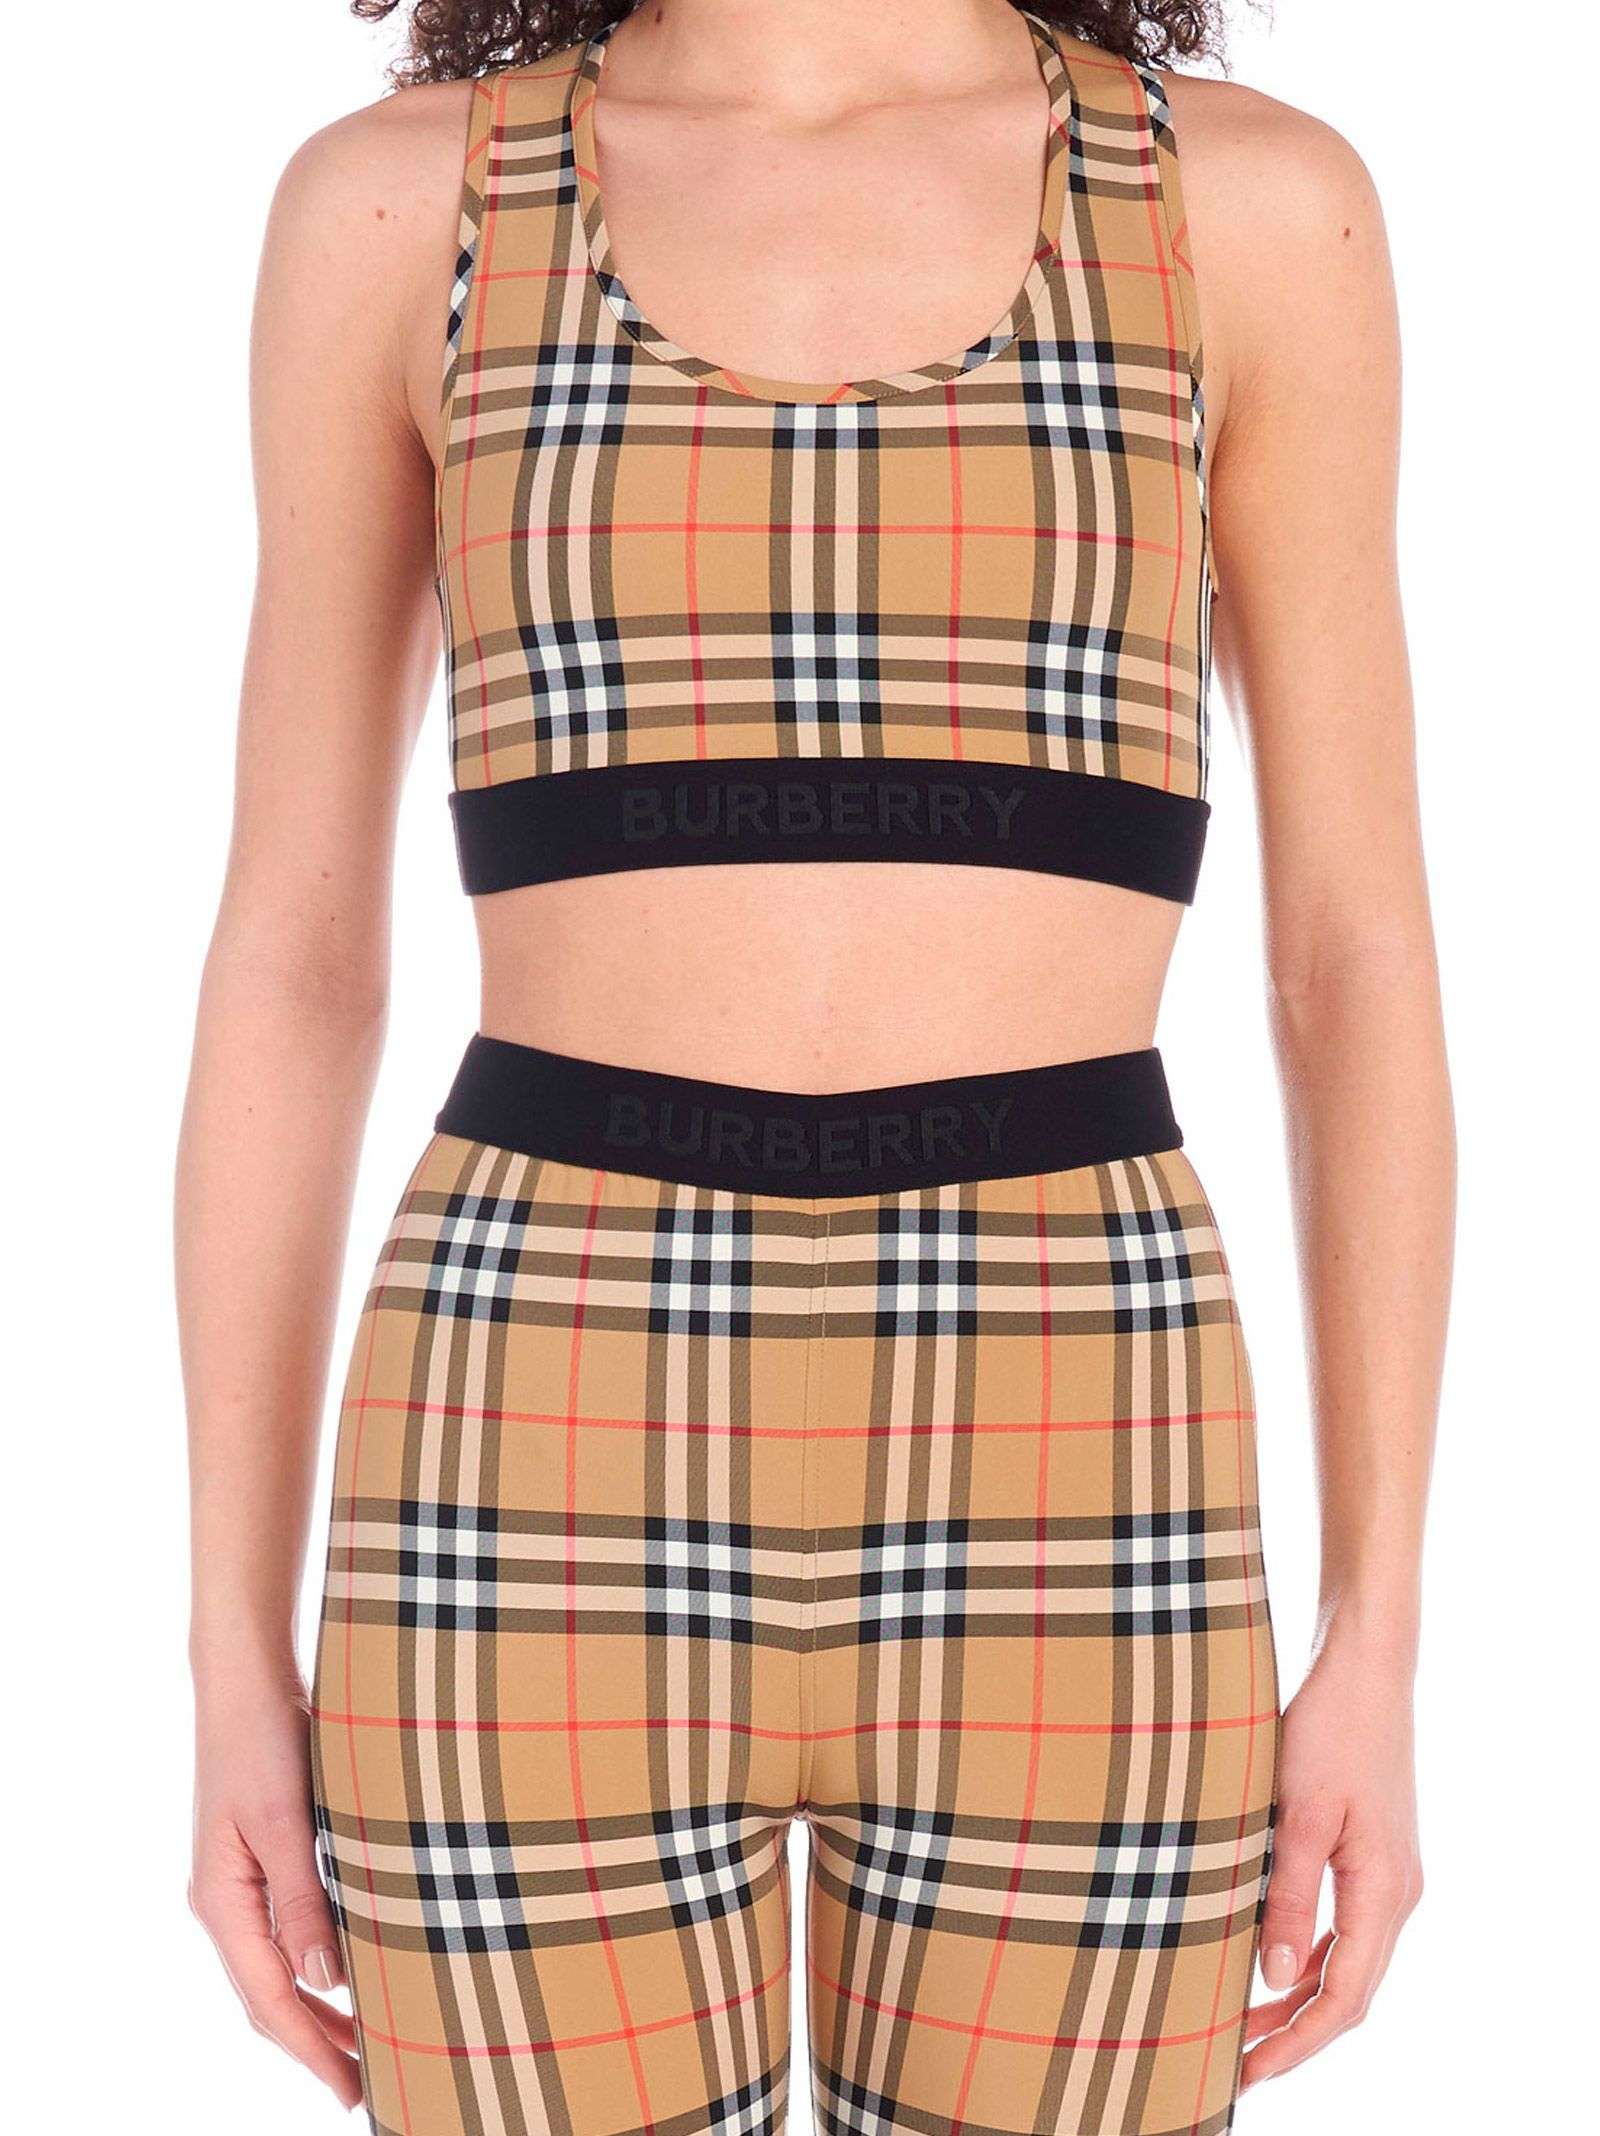 67192a7d403334 Burberry Logo Detail Vintage Check Bra Top In Brown